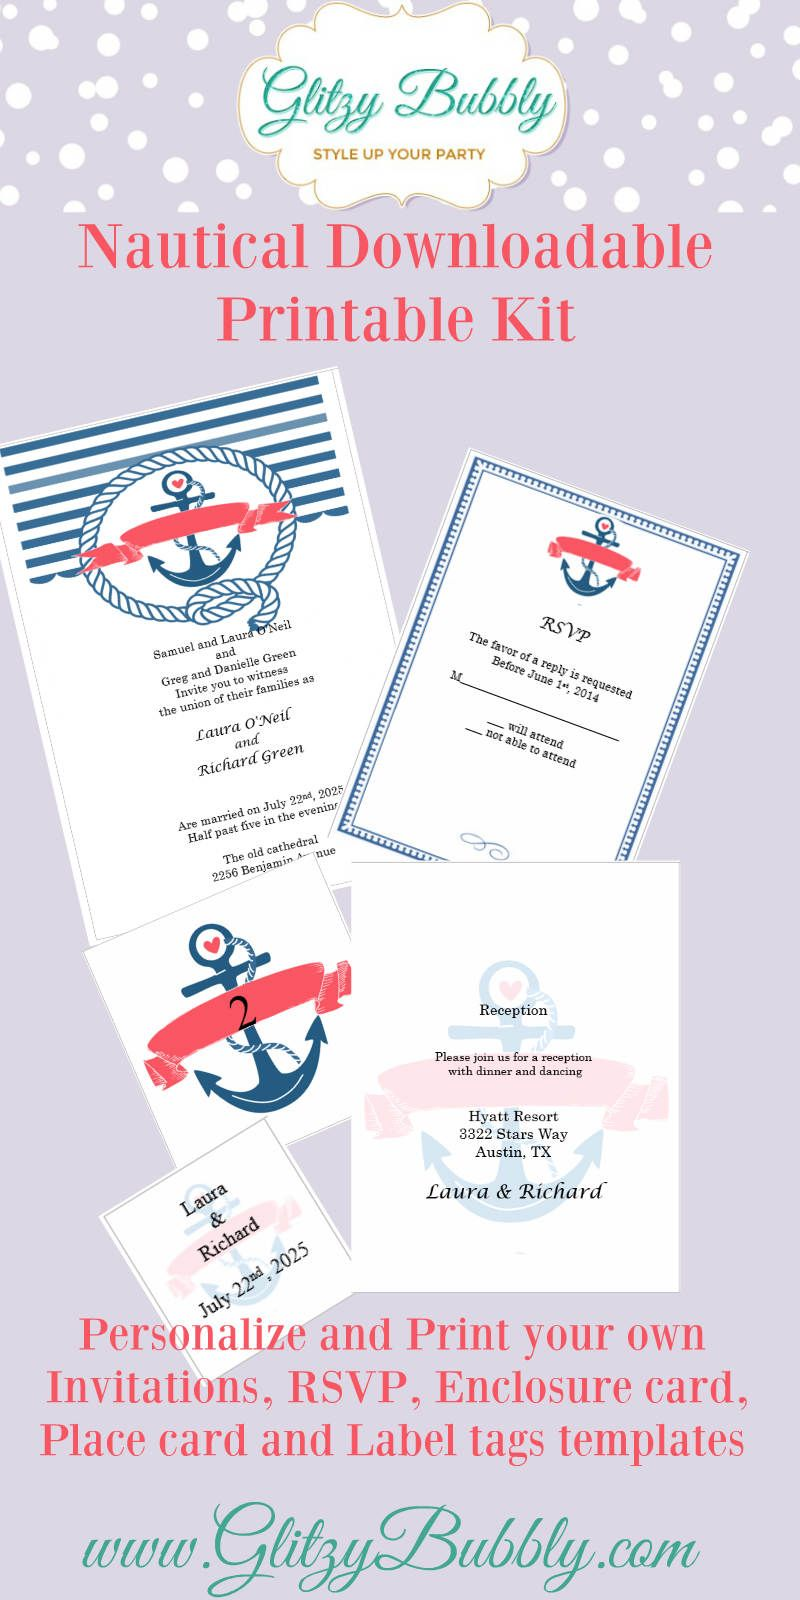 Download your free nautical wedding invitation template at Creative ...